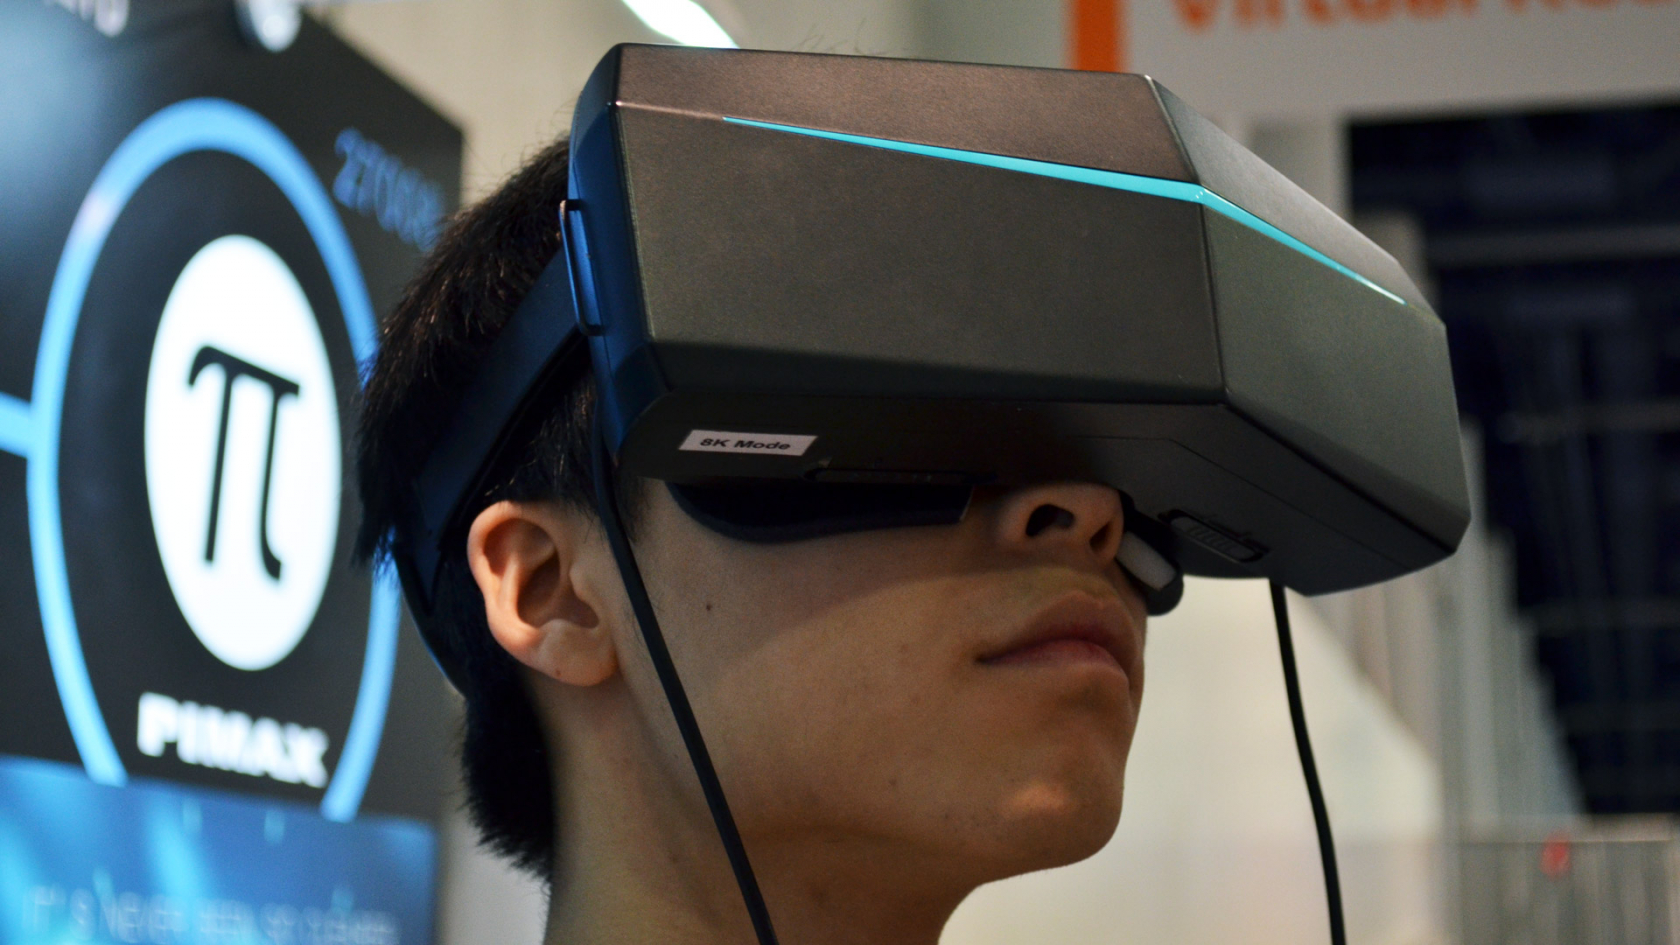 Geek Insider, GeekInsider, GeekInsider.com,, Is Virtual Reality the New Age of Reality?, Culture, Featured, Geek Life, tech news